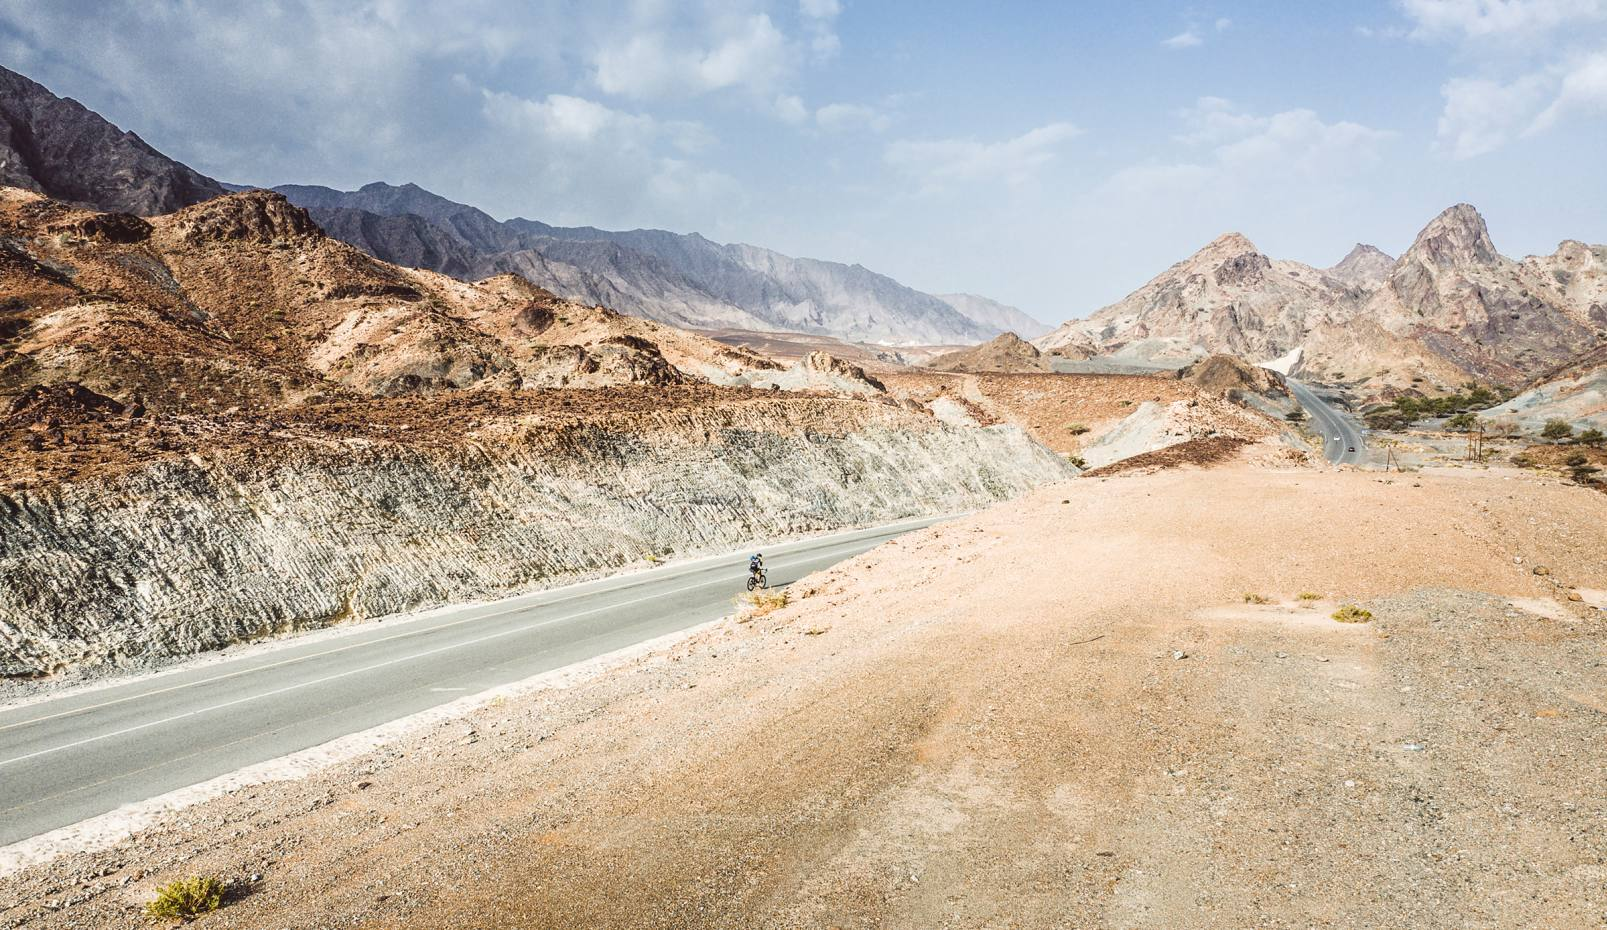 A gruelling endurance cycling challenge in Oman